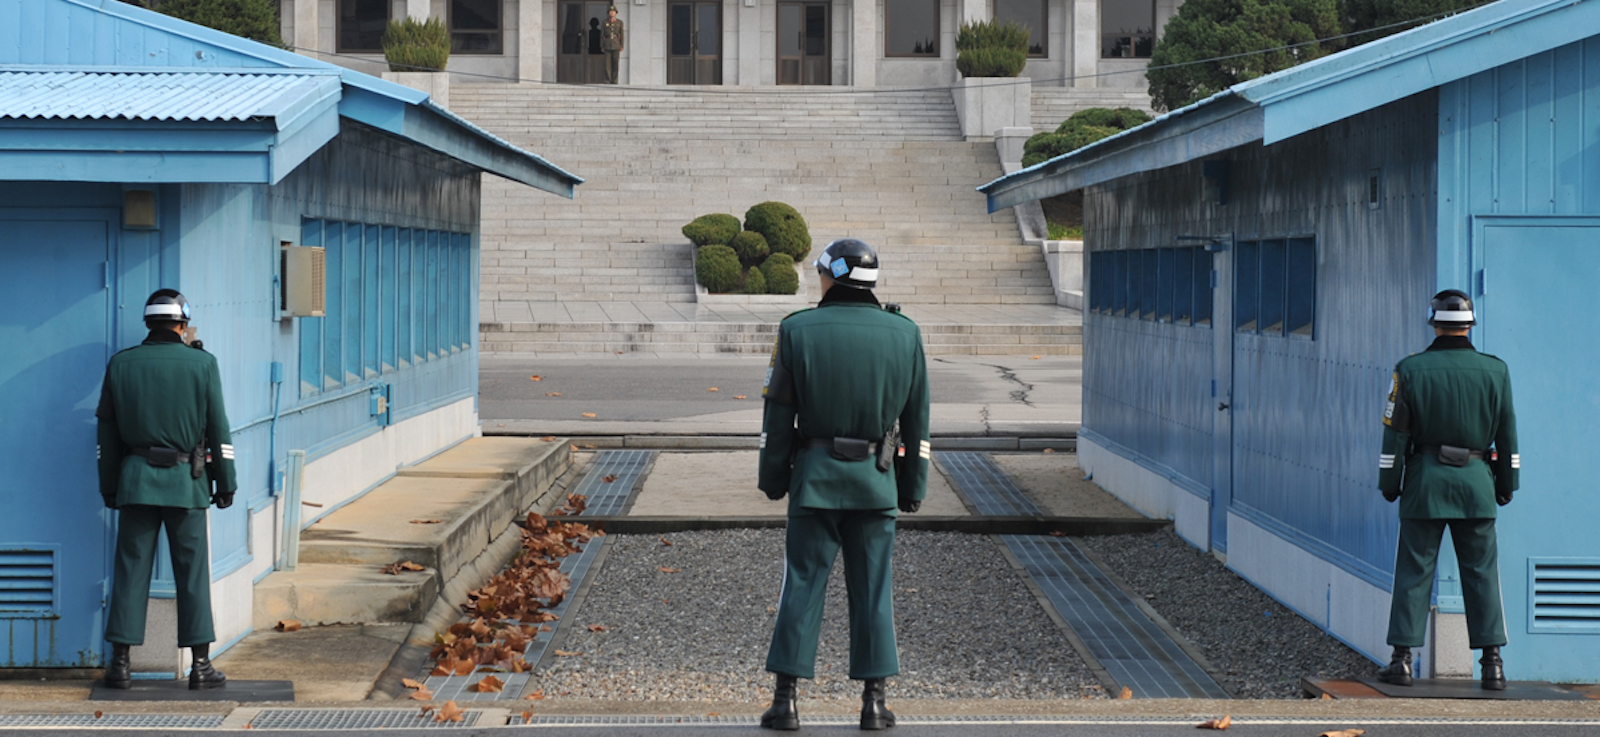 South Korea has, in a colossal strategic error, placed its capital just thirty miles from the border. (Photo: Air Force Retiree Services)